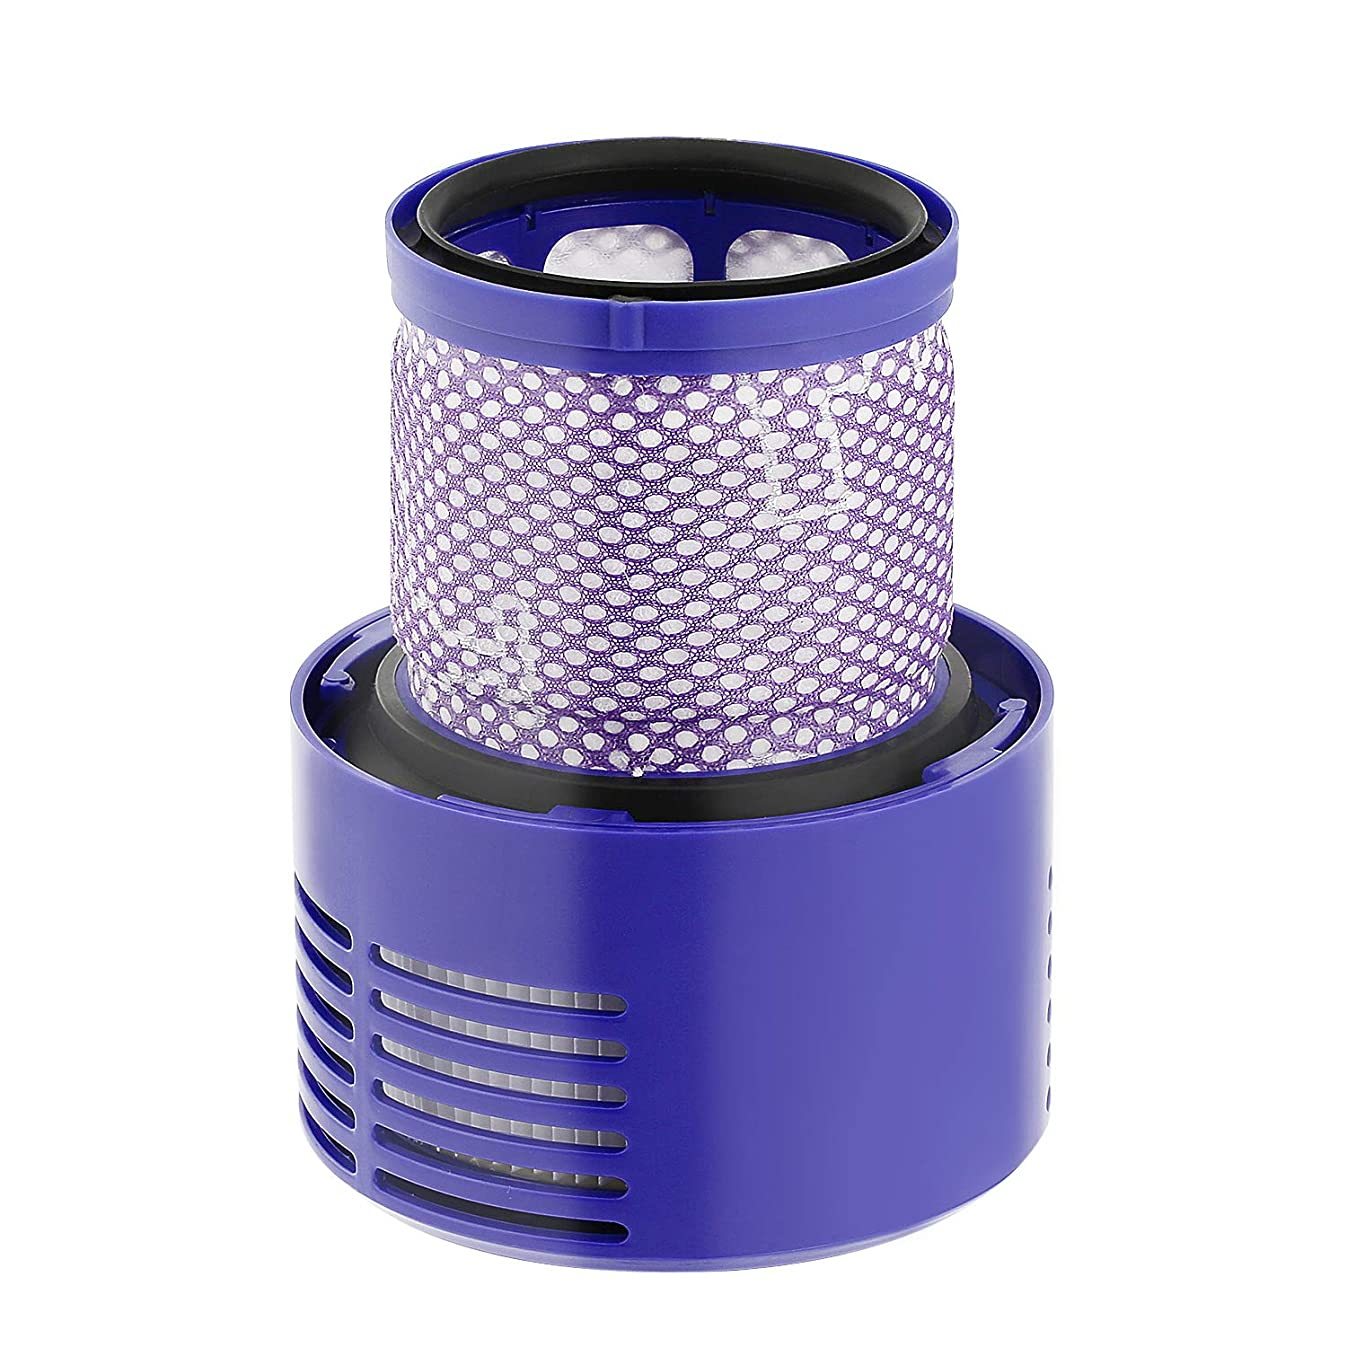 isinlive Filter Replacement Washable Compatible Dyson V10 SV12 Cyclone Animal Absolute Total Clean Vacuum Cleaner